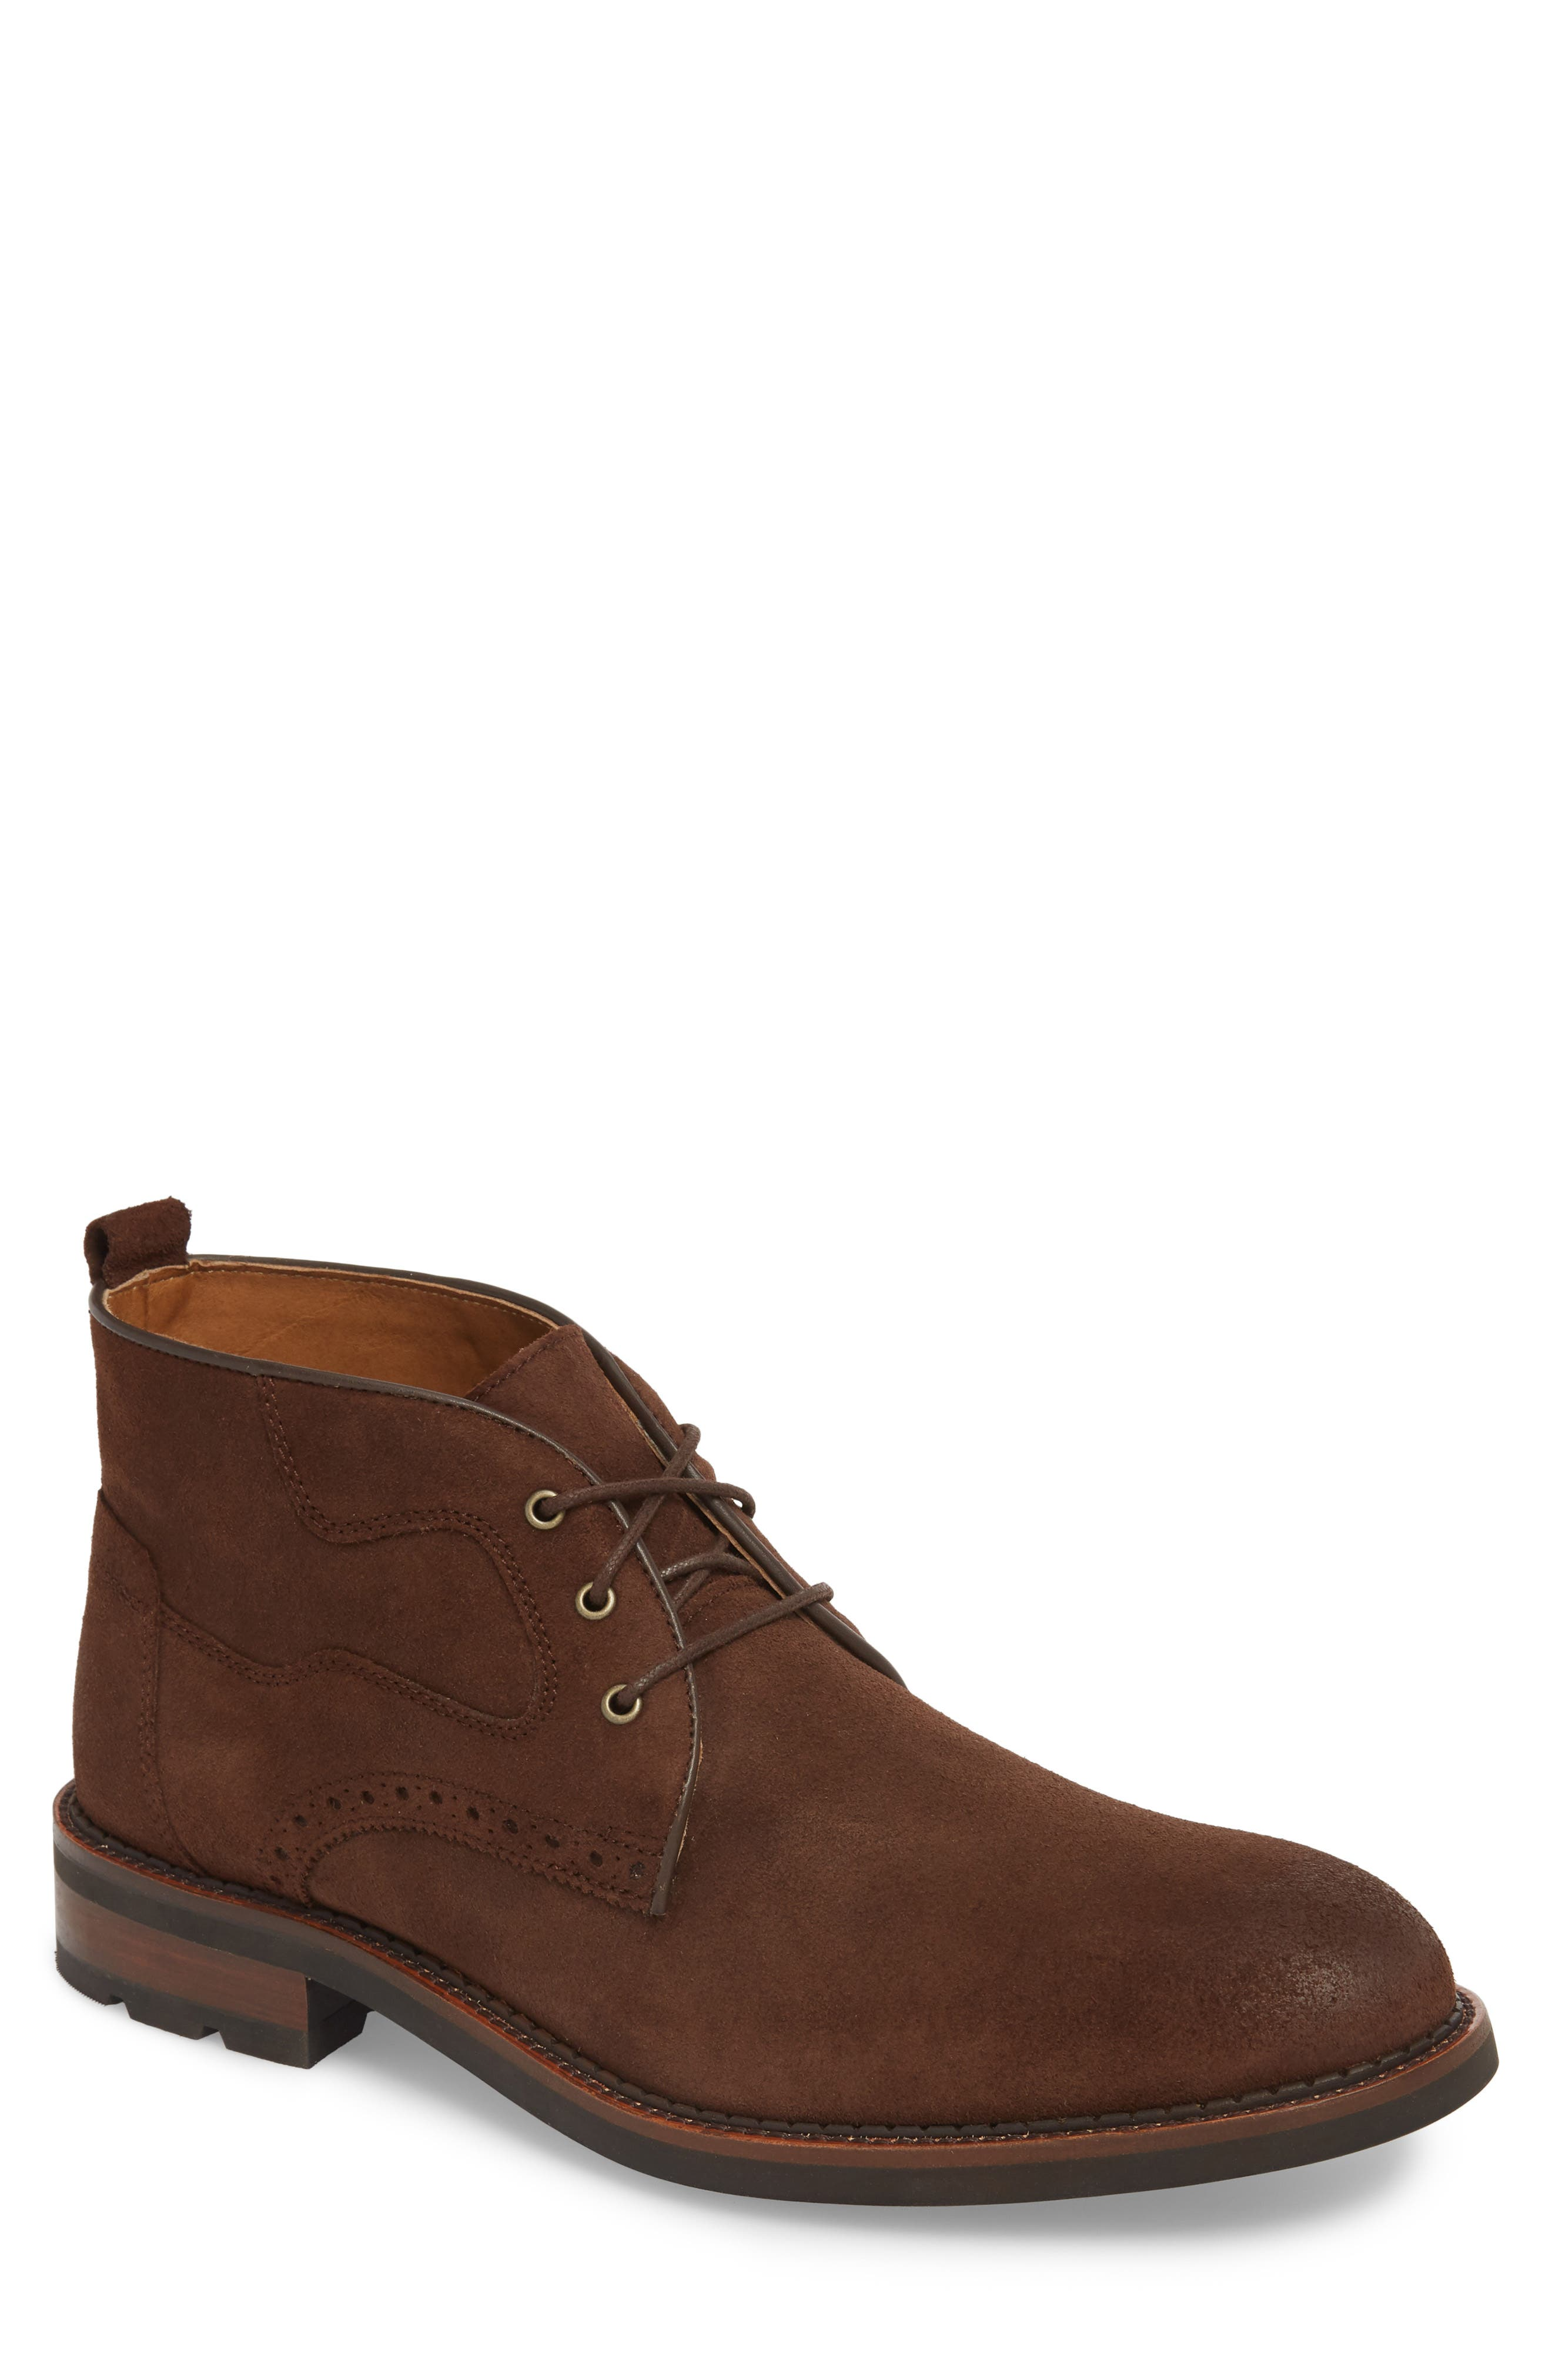 Fullerton Chukka Boot,                             Main thumbnail 1, color,                             DARK BROWN